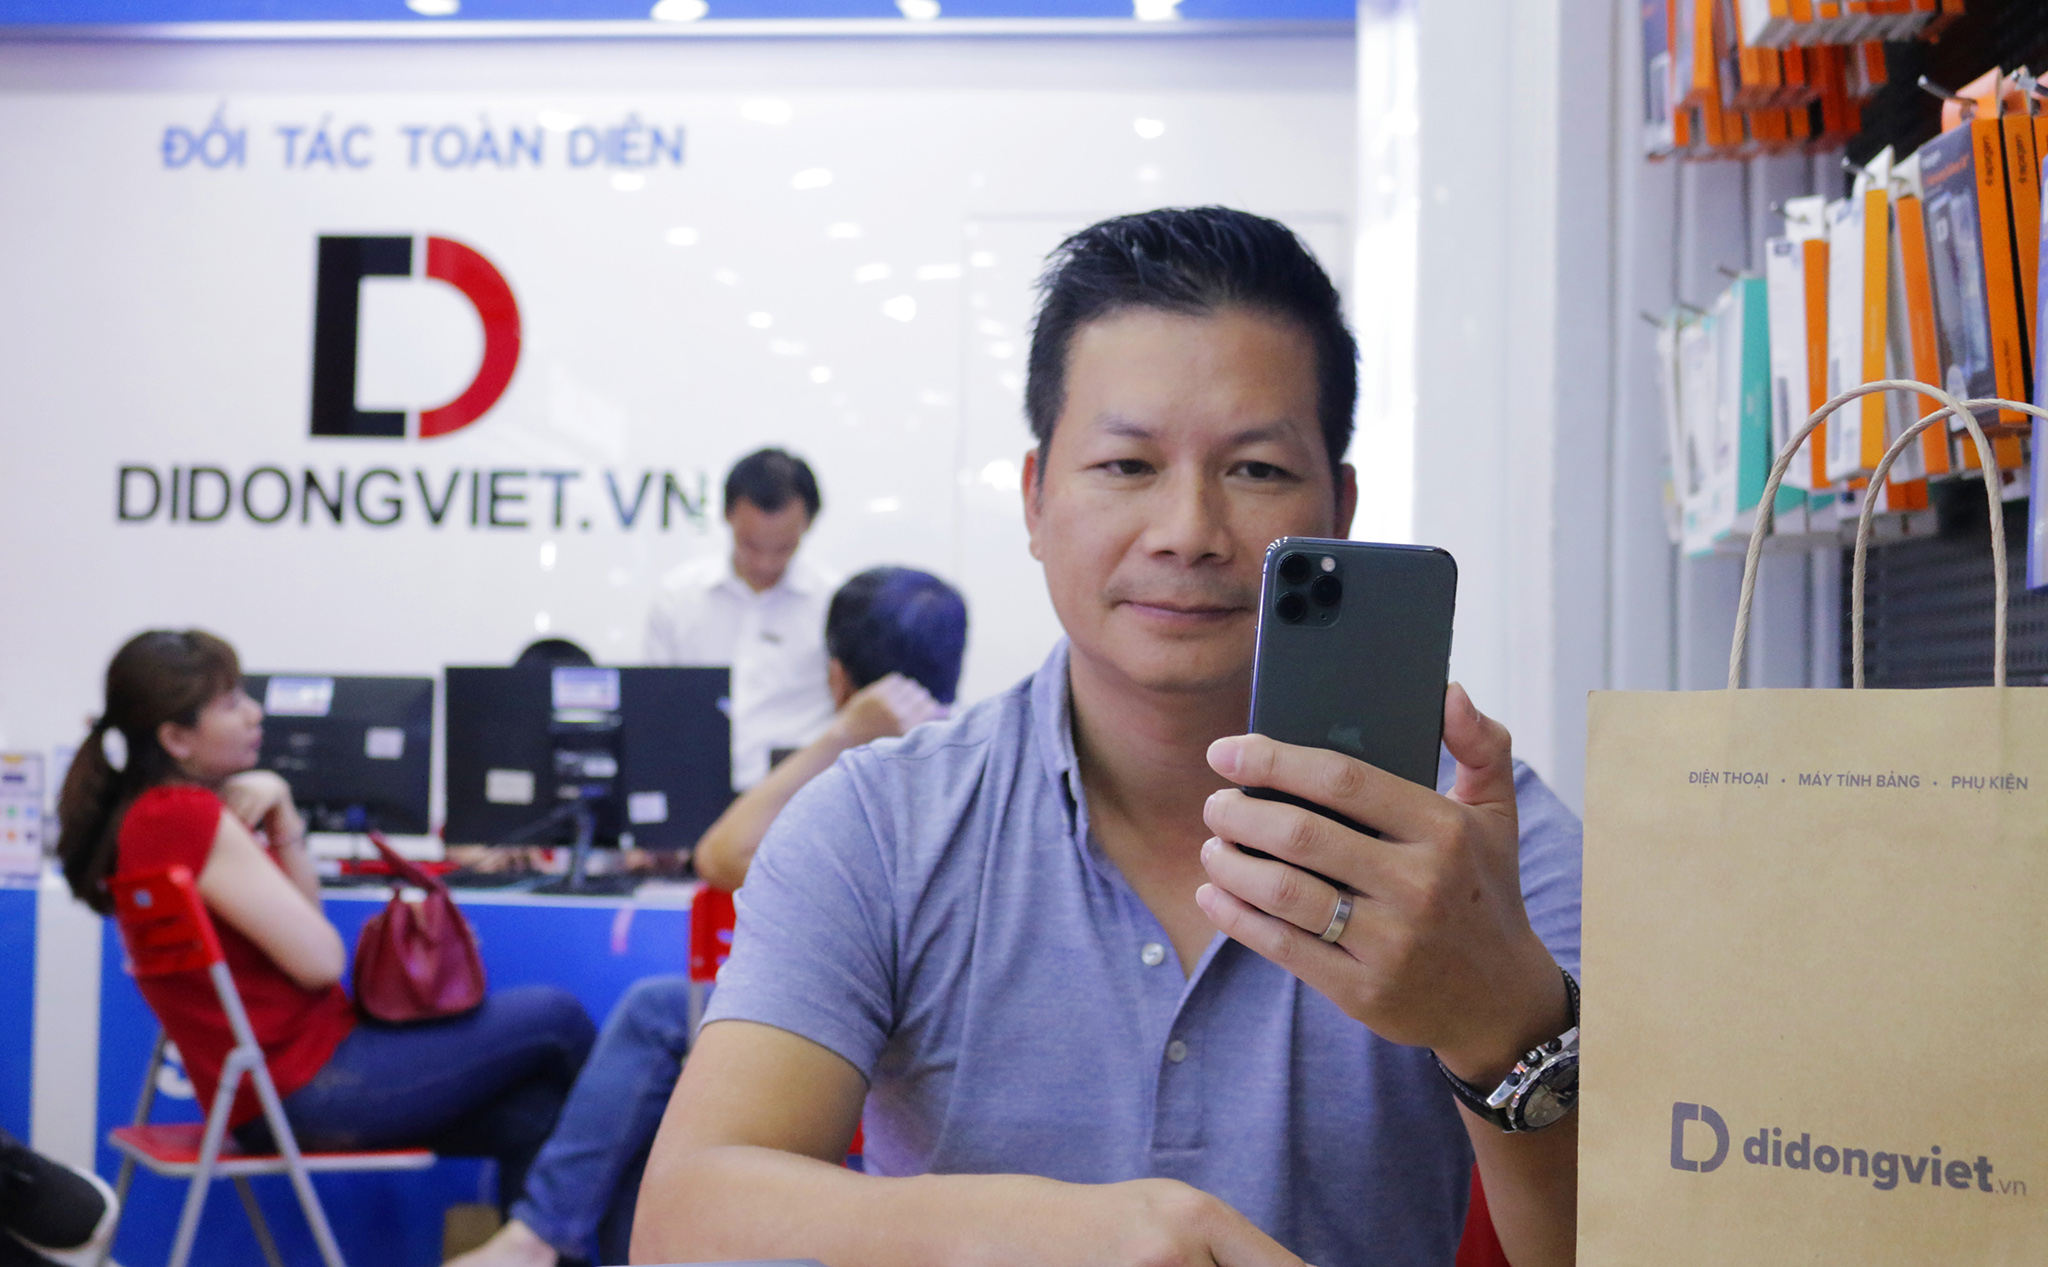 How Shark Hung and famous Vietnamese stars choose iPhone 11 Pro Max - VnReview